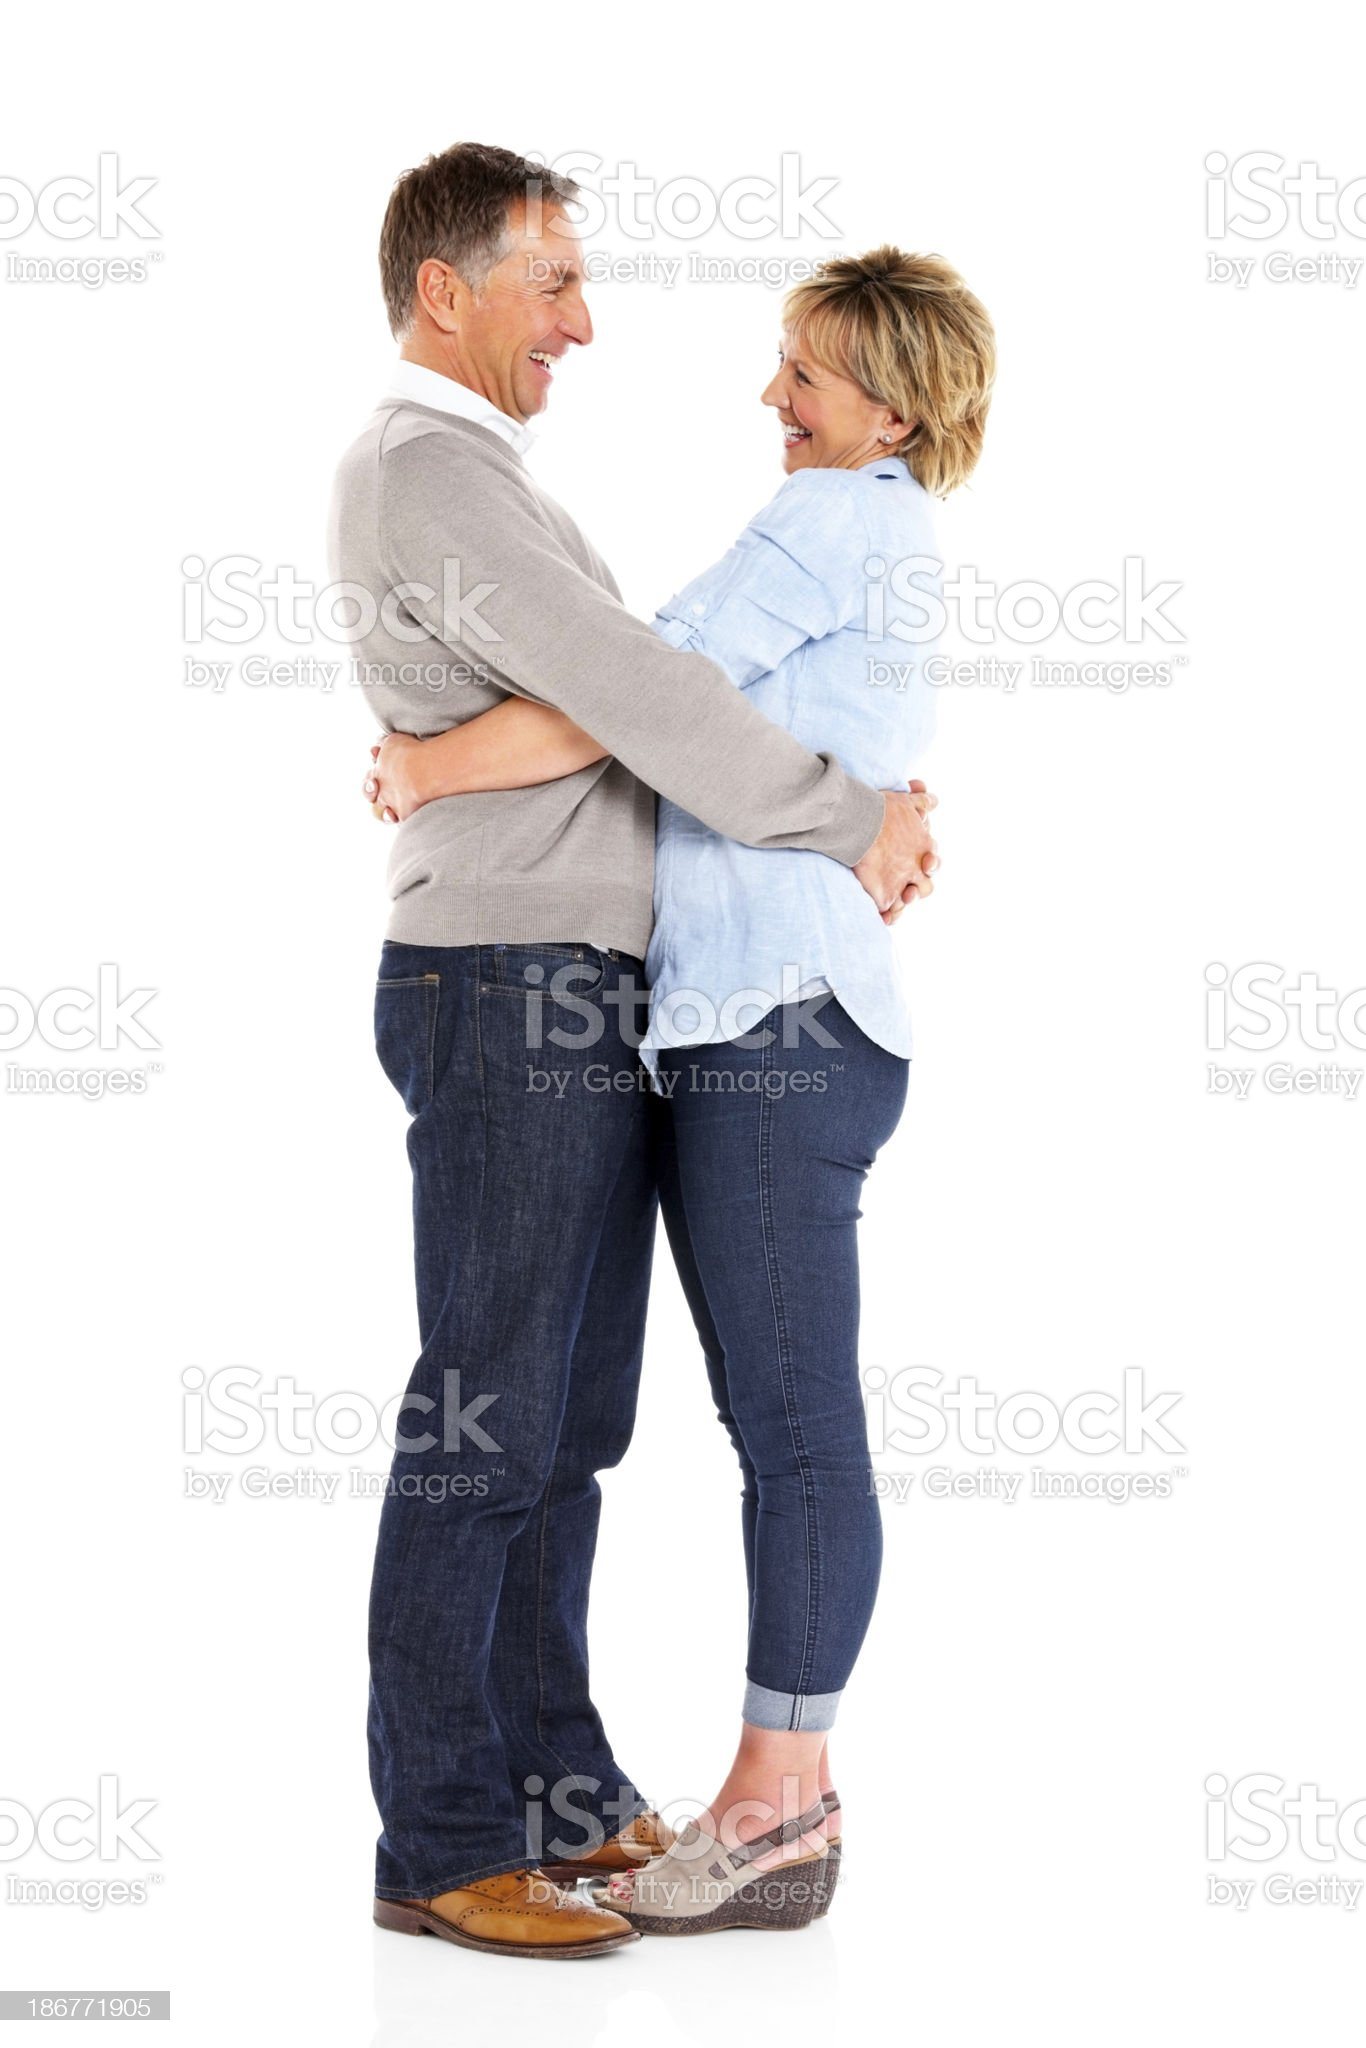 Affectionate couple with their arms around each othe royalty-free stock photo